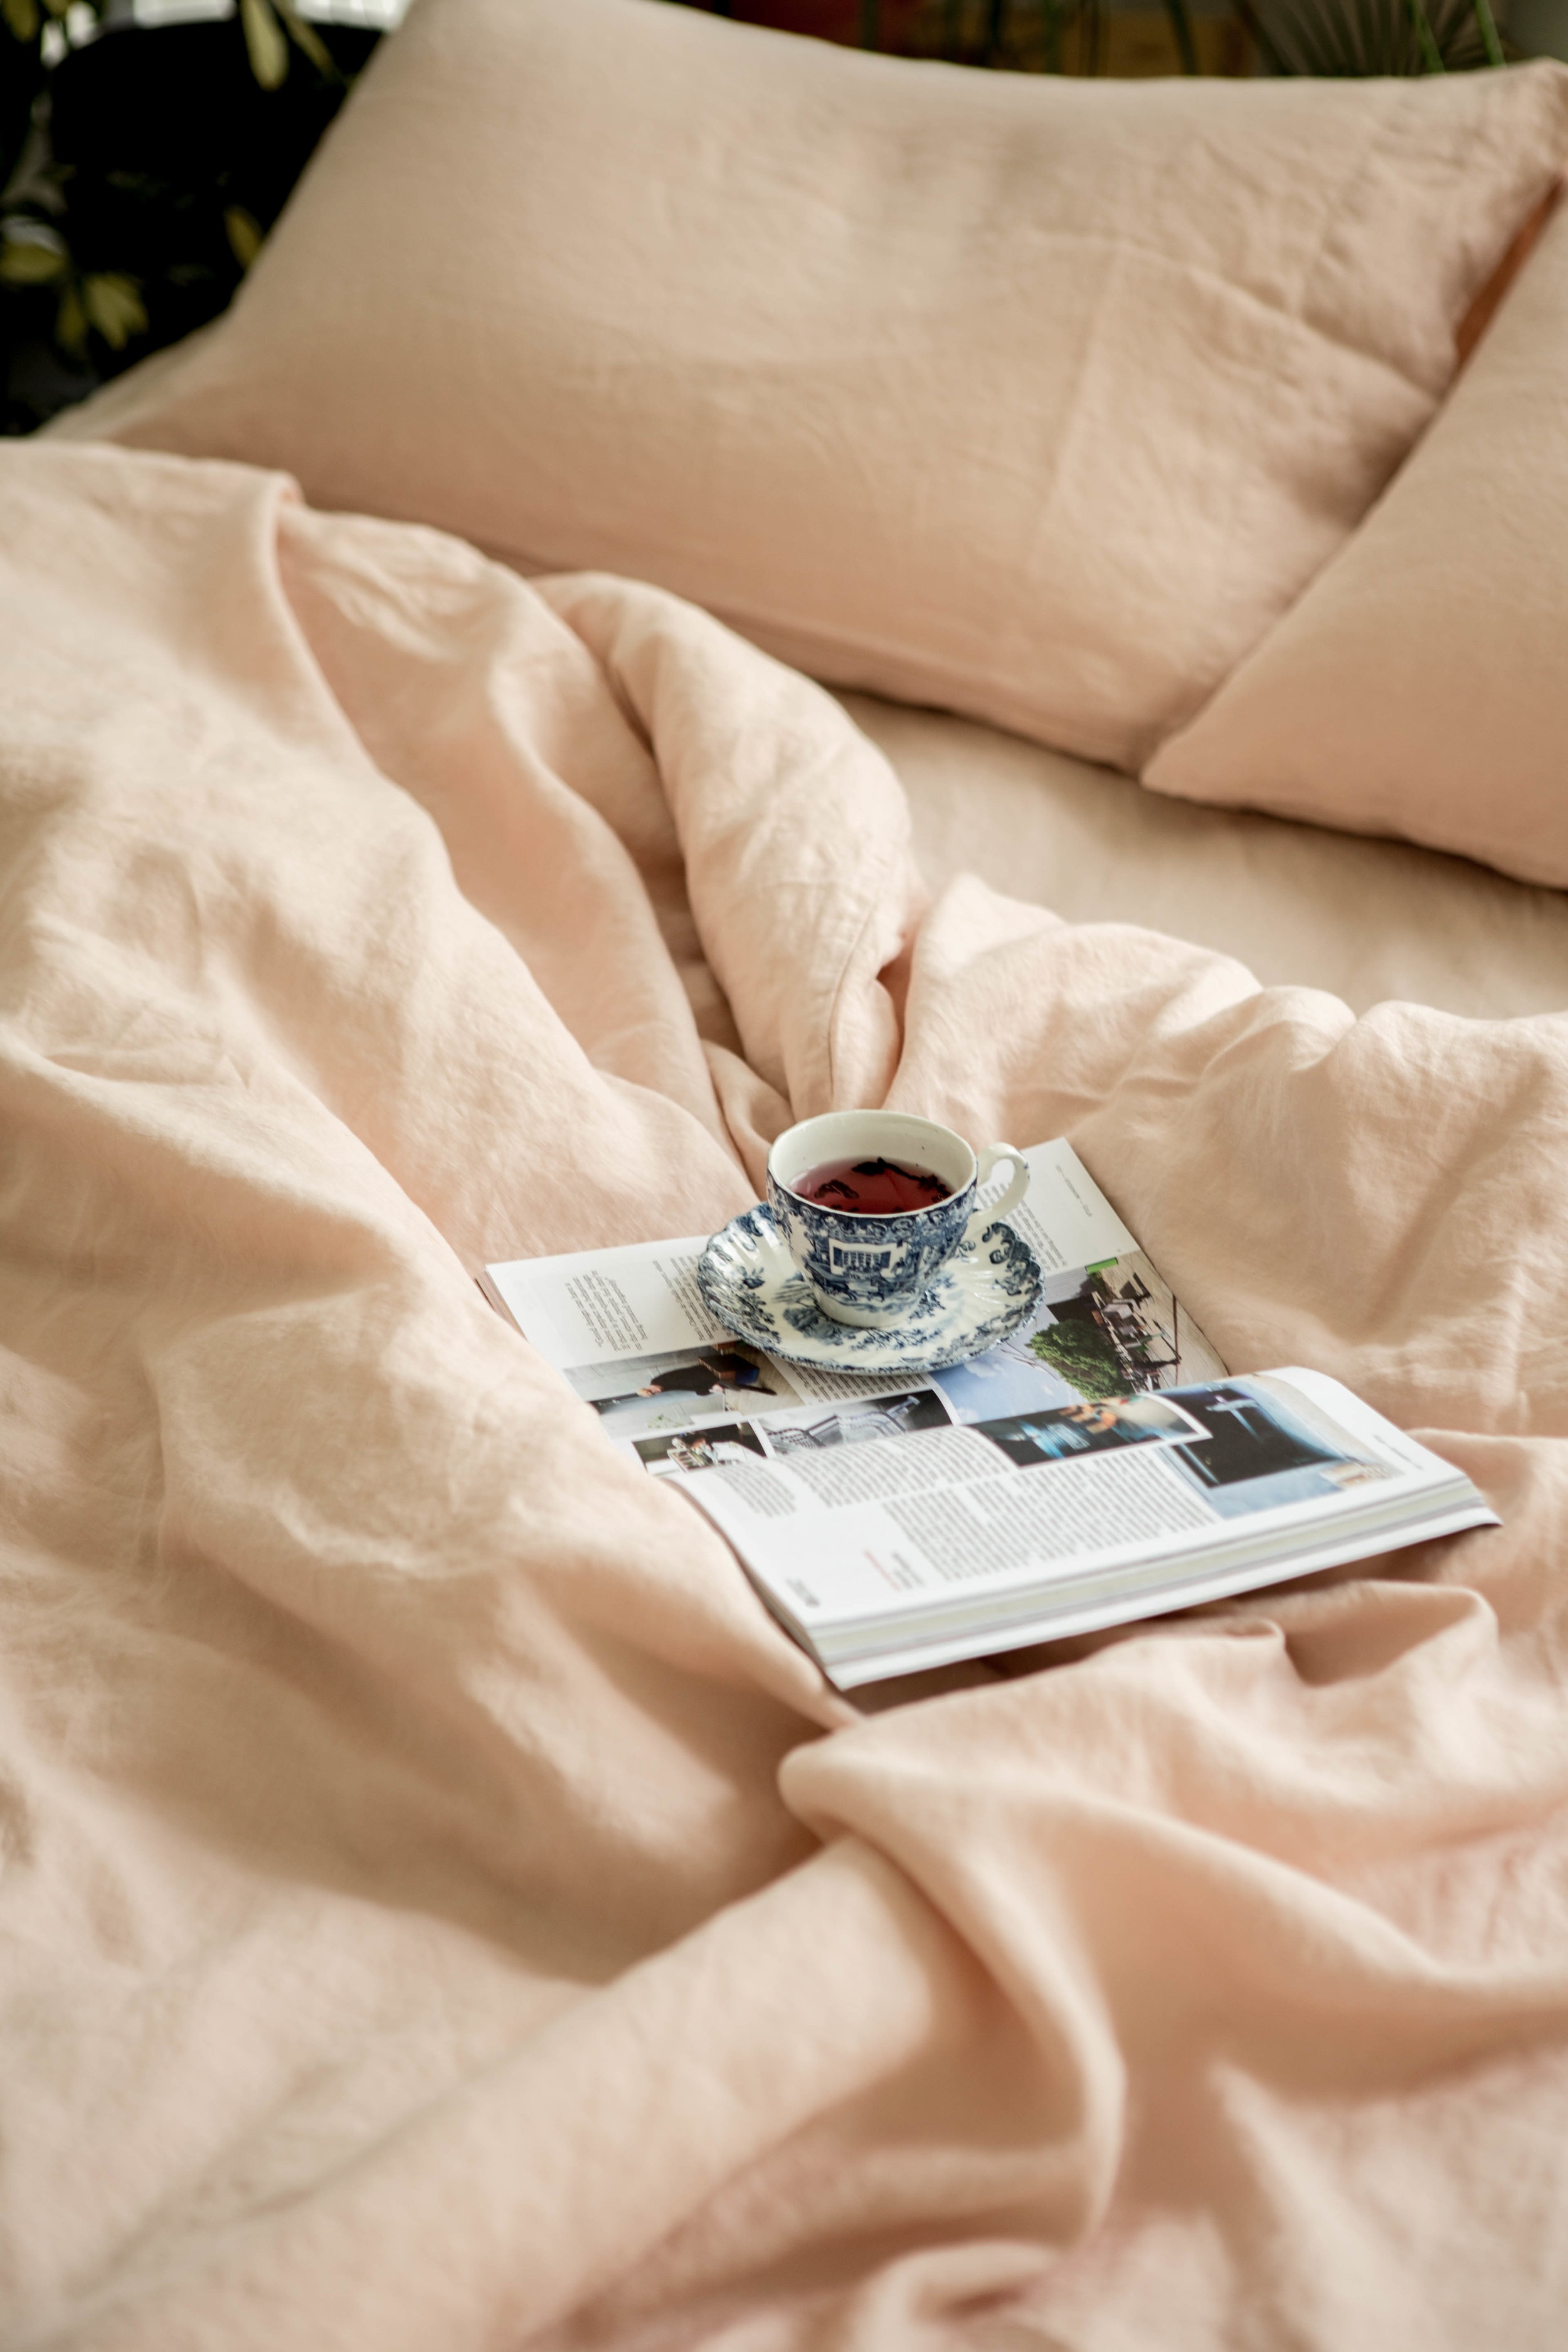 Commissioned for Sunday Bedding's new linen collection, 2019  Art Direction, Styling & Photography: Rachel Loh